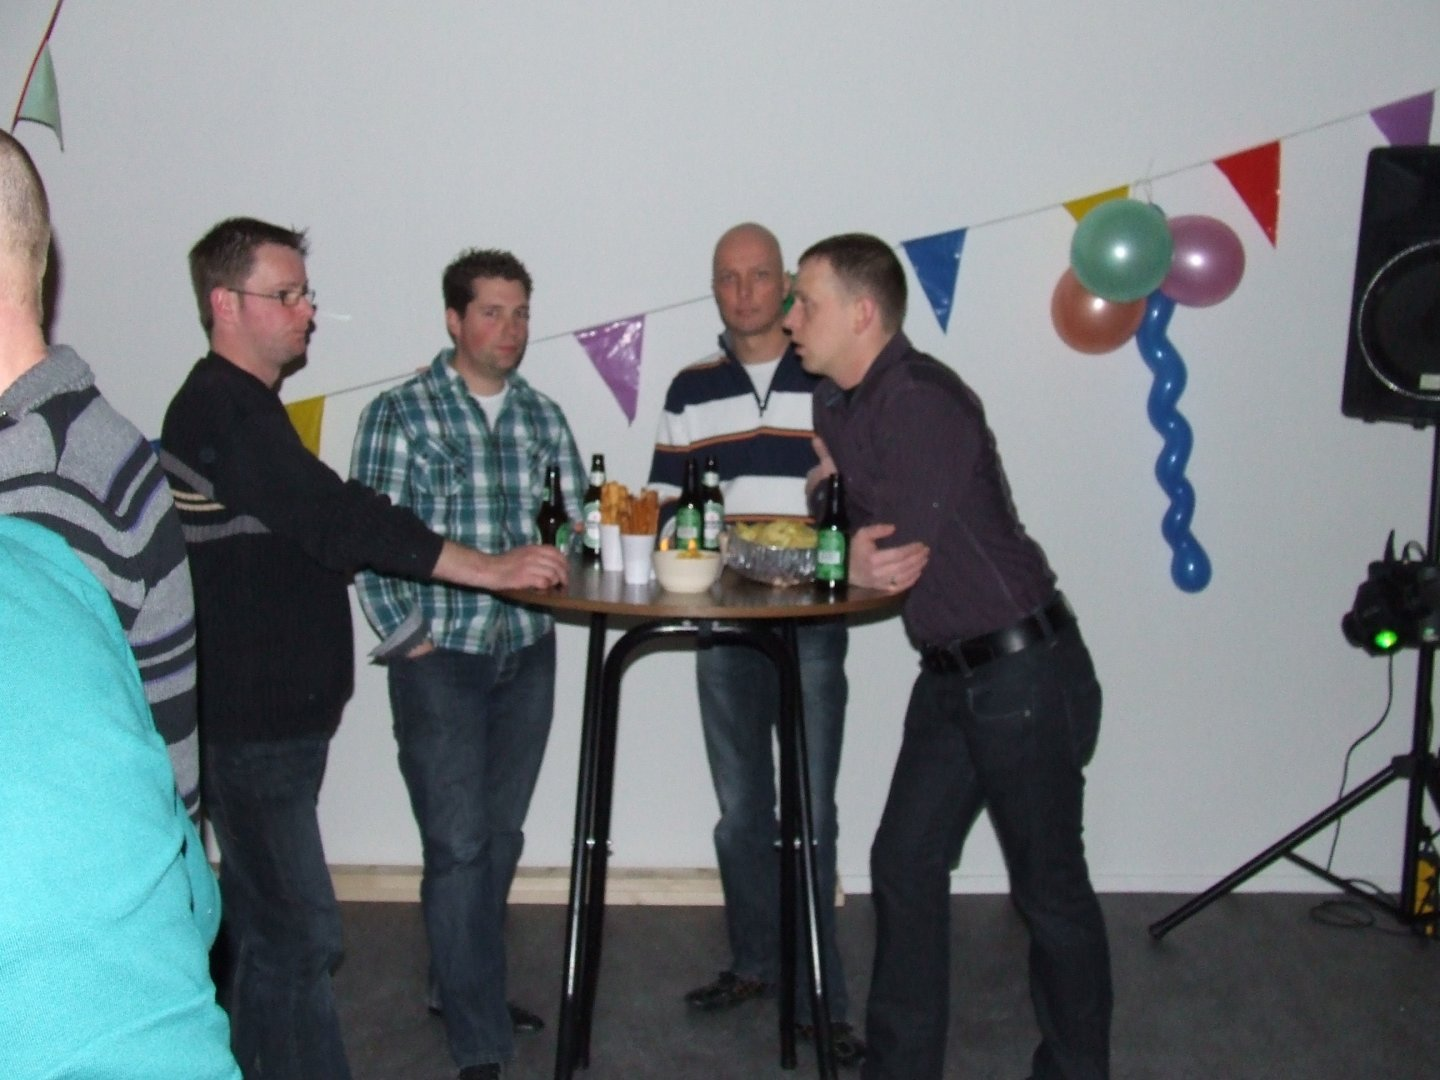 kerstfeest 2010 009